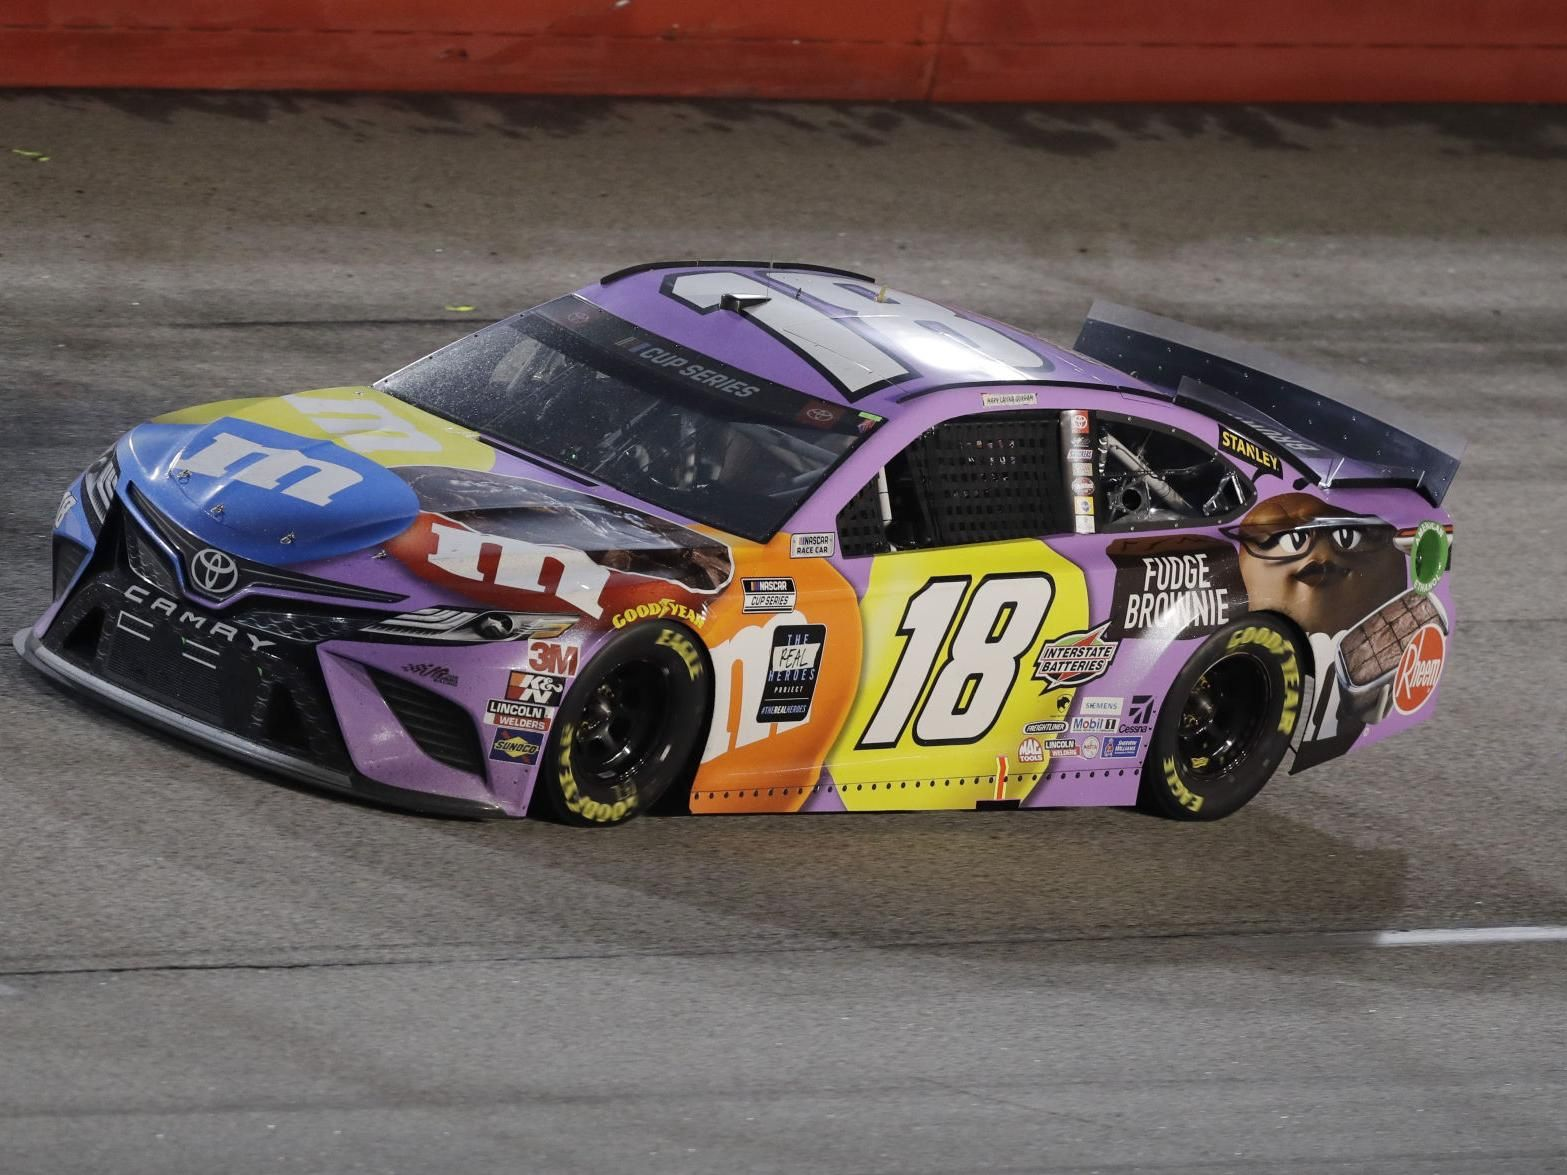 Pin on Kyle Busch